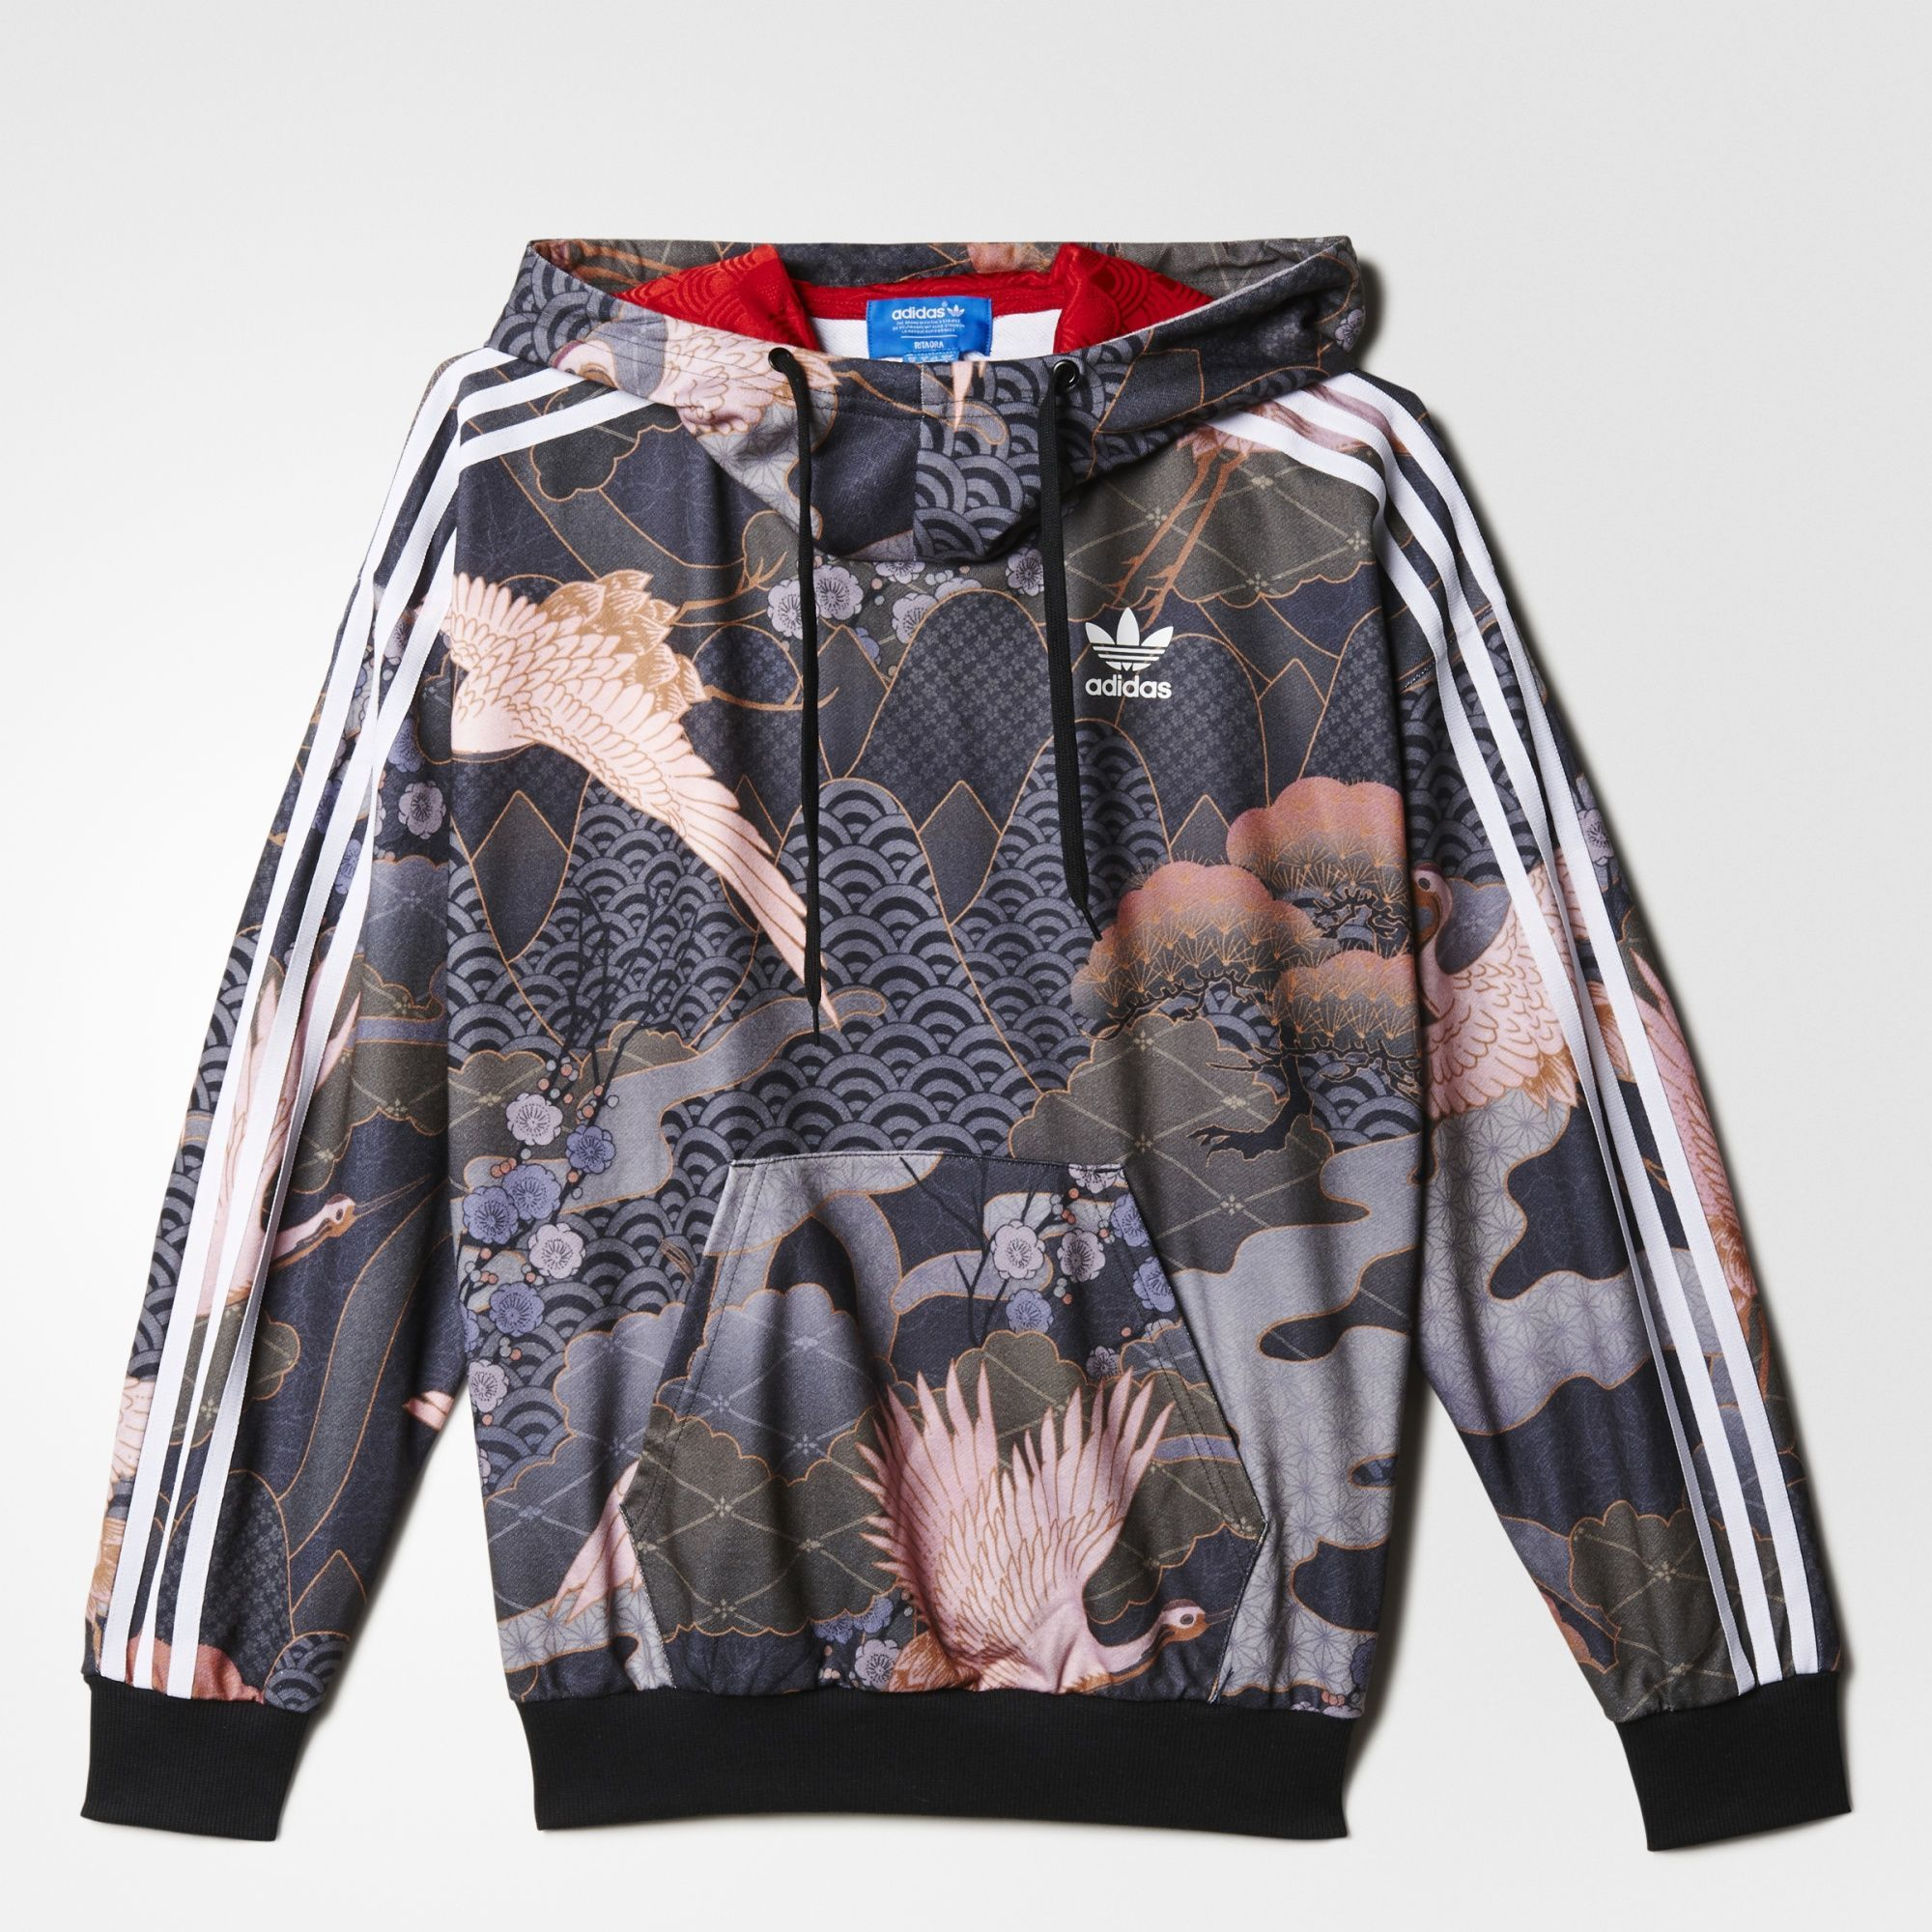 Access Denied | Dameskleding, Sportieve outfits, Adidas outfit